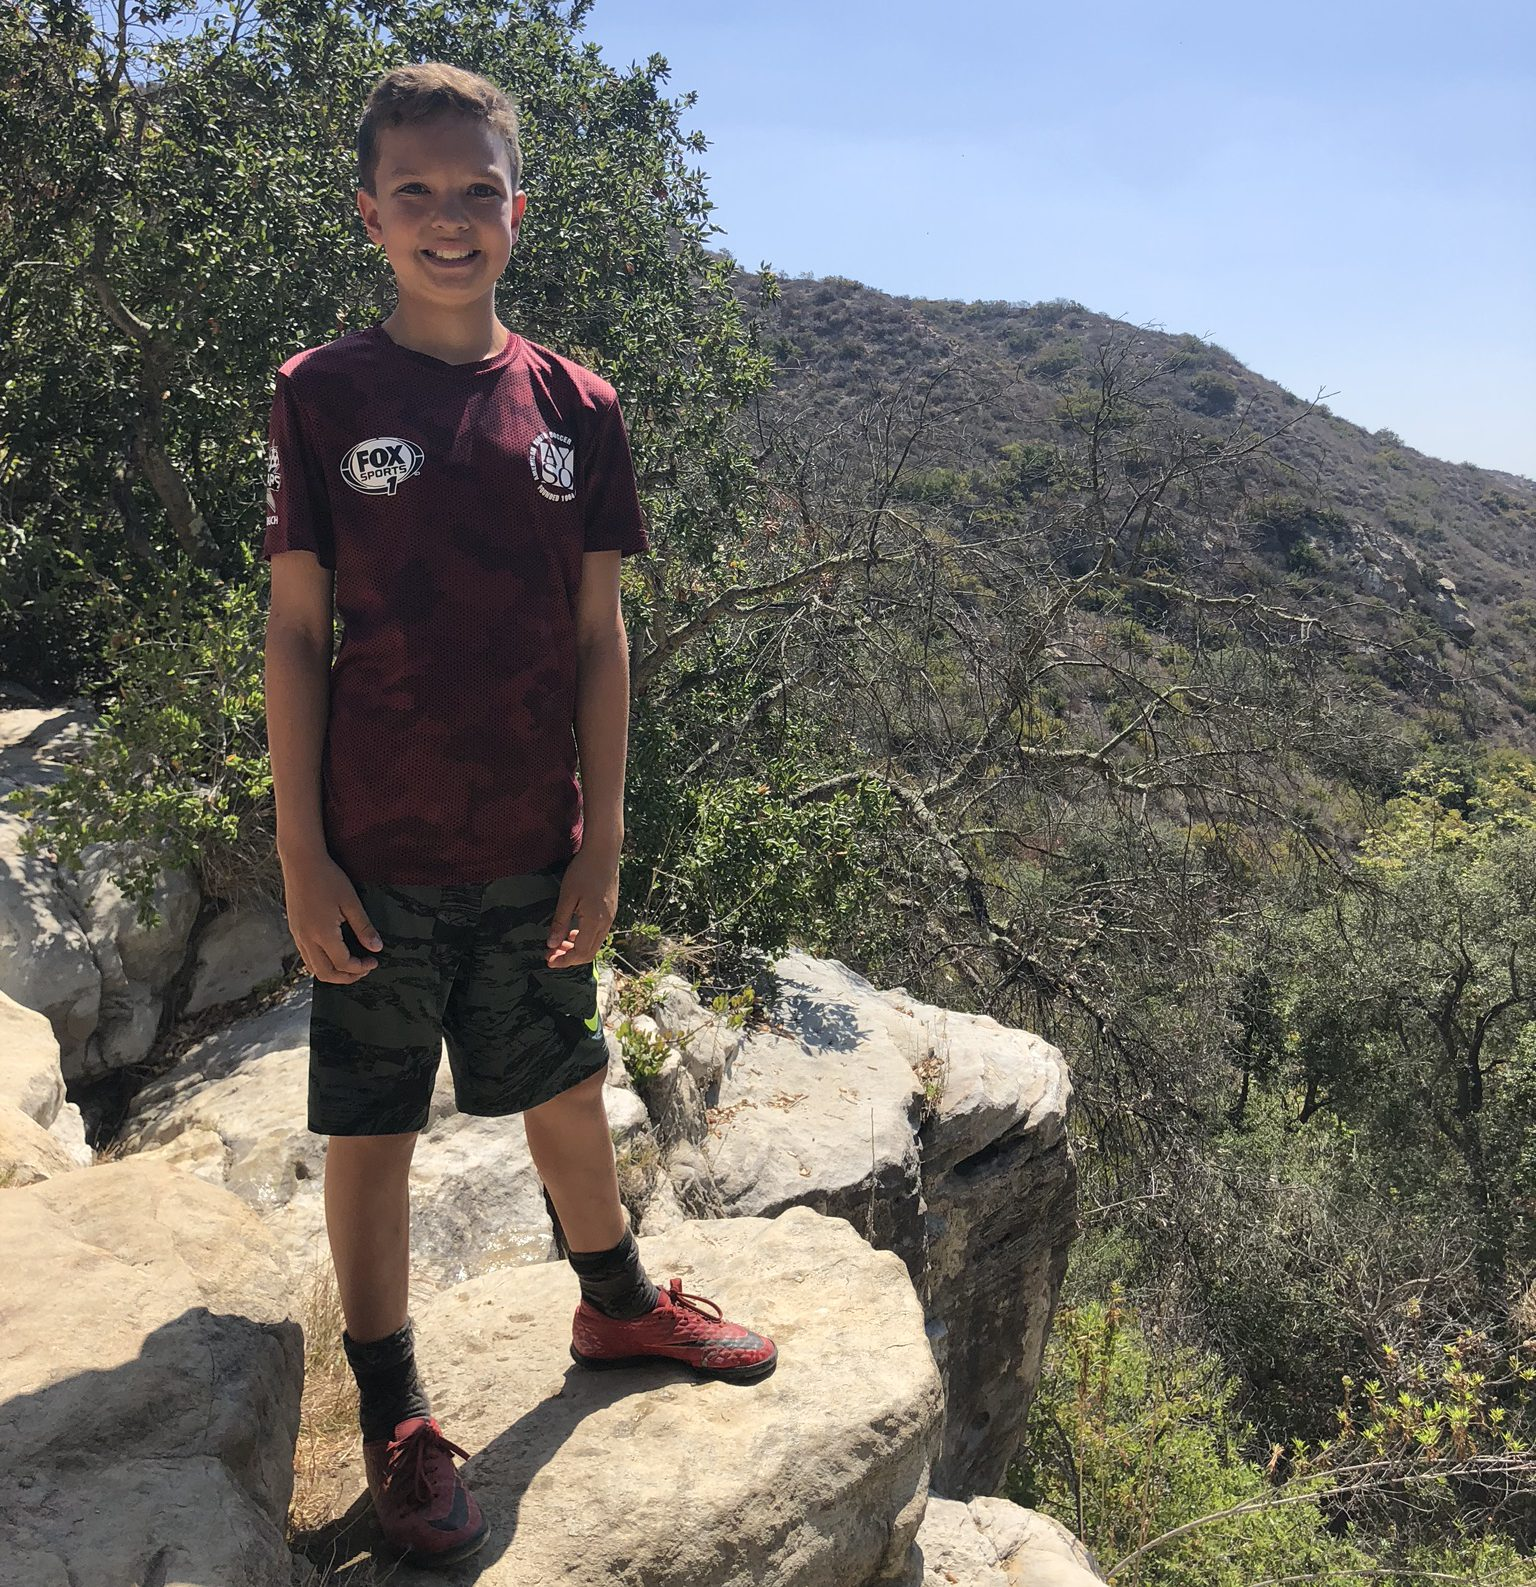 Young Boy on a hike, on top of rocky crest in canyon